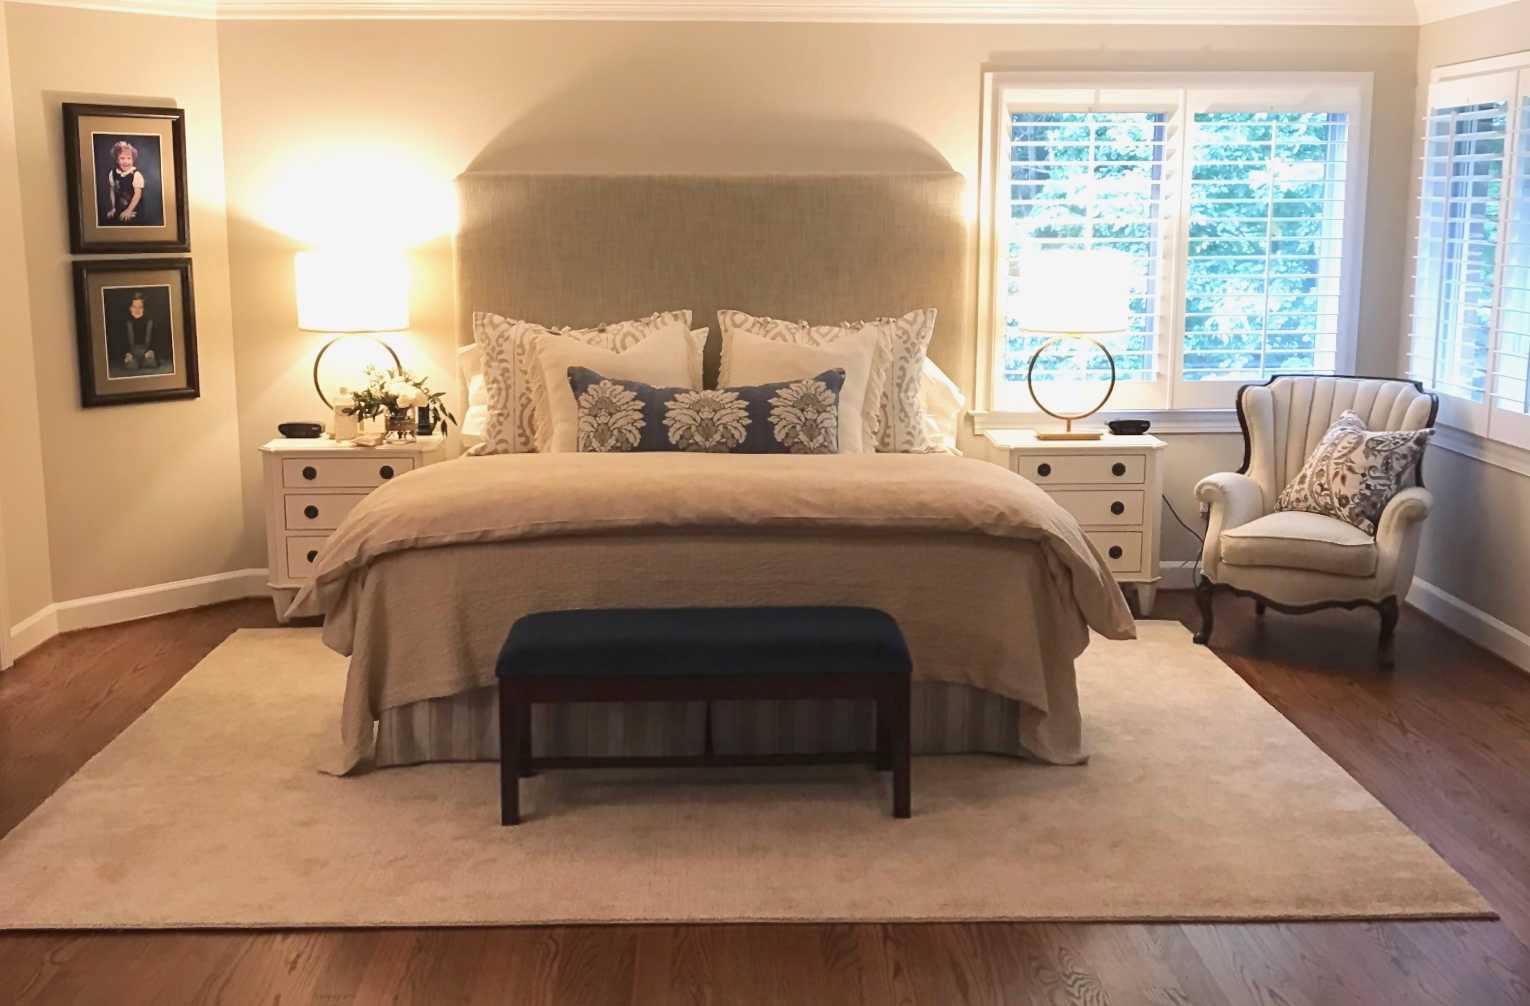 """Client """"Turning-down for an Update"""" in McLean, VA, the after.Turndown Service and Design by Valerianne of DC."""